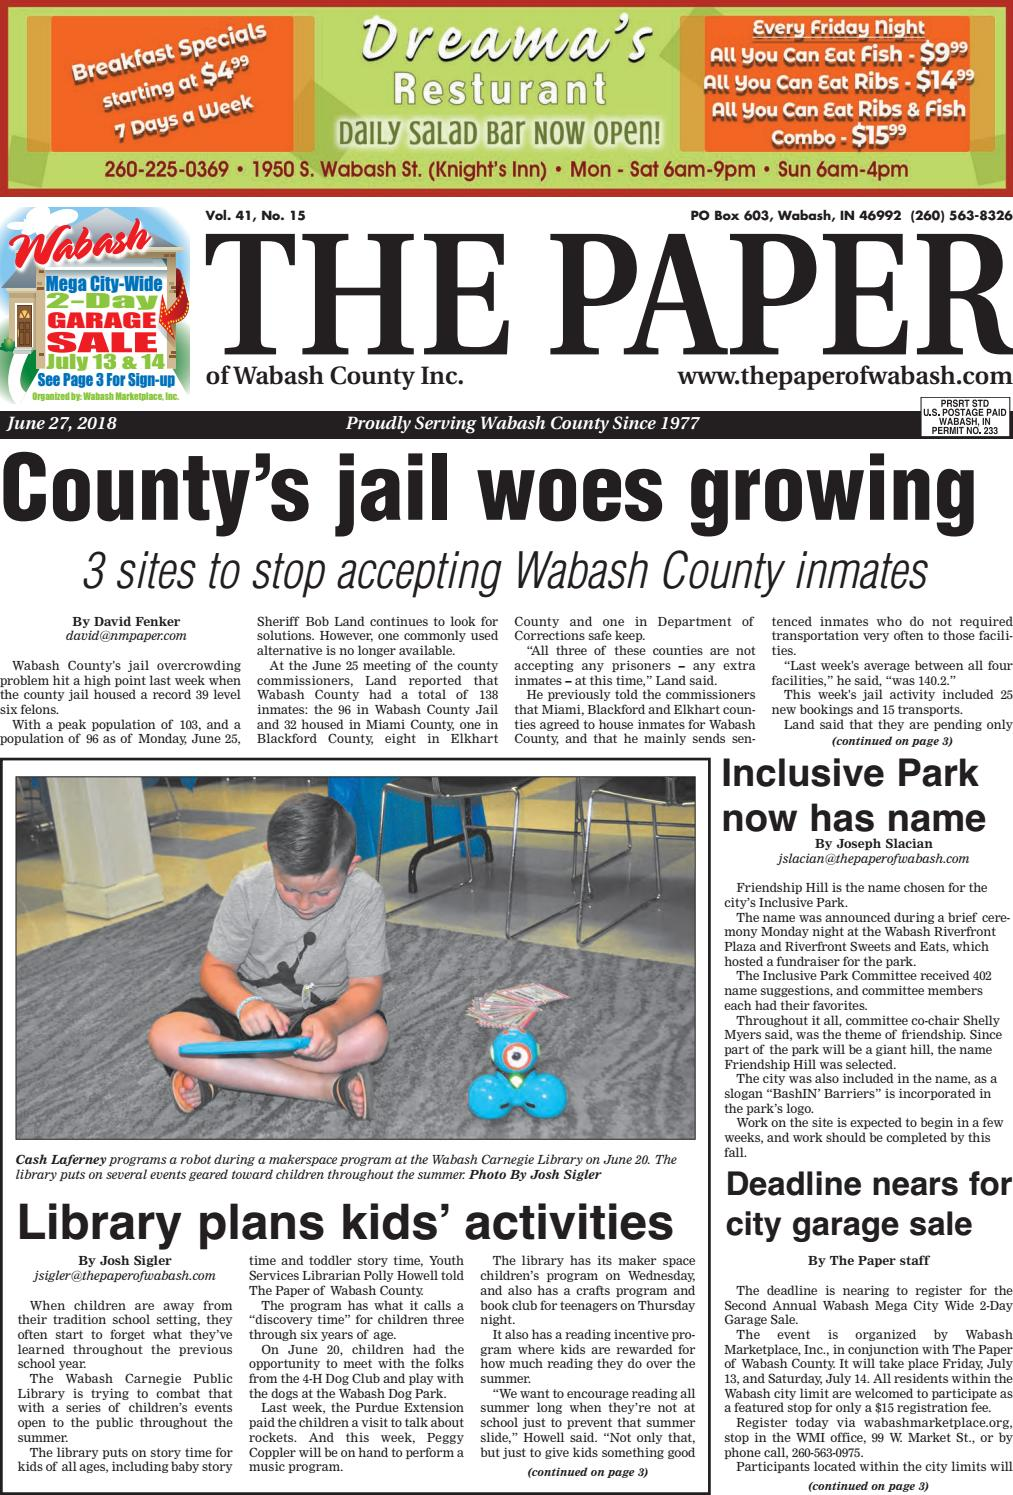 The Paper of Wabash County -- June 27 issue by The Paper of Wabash